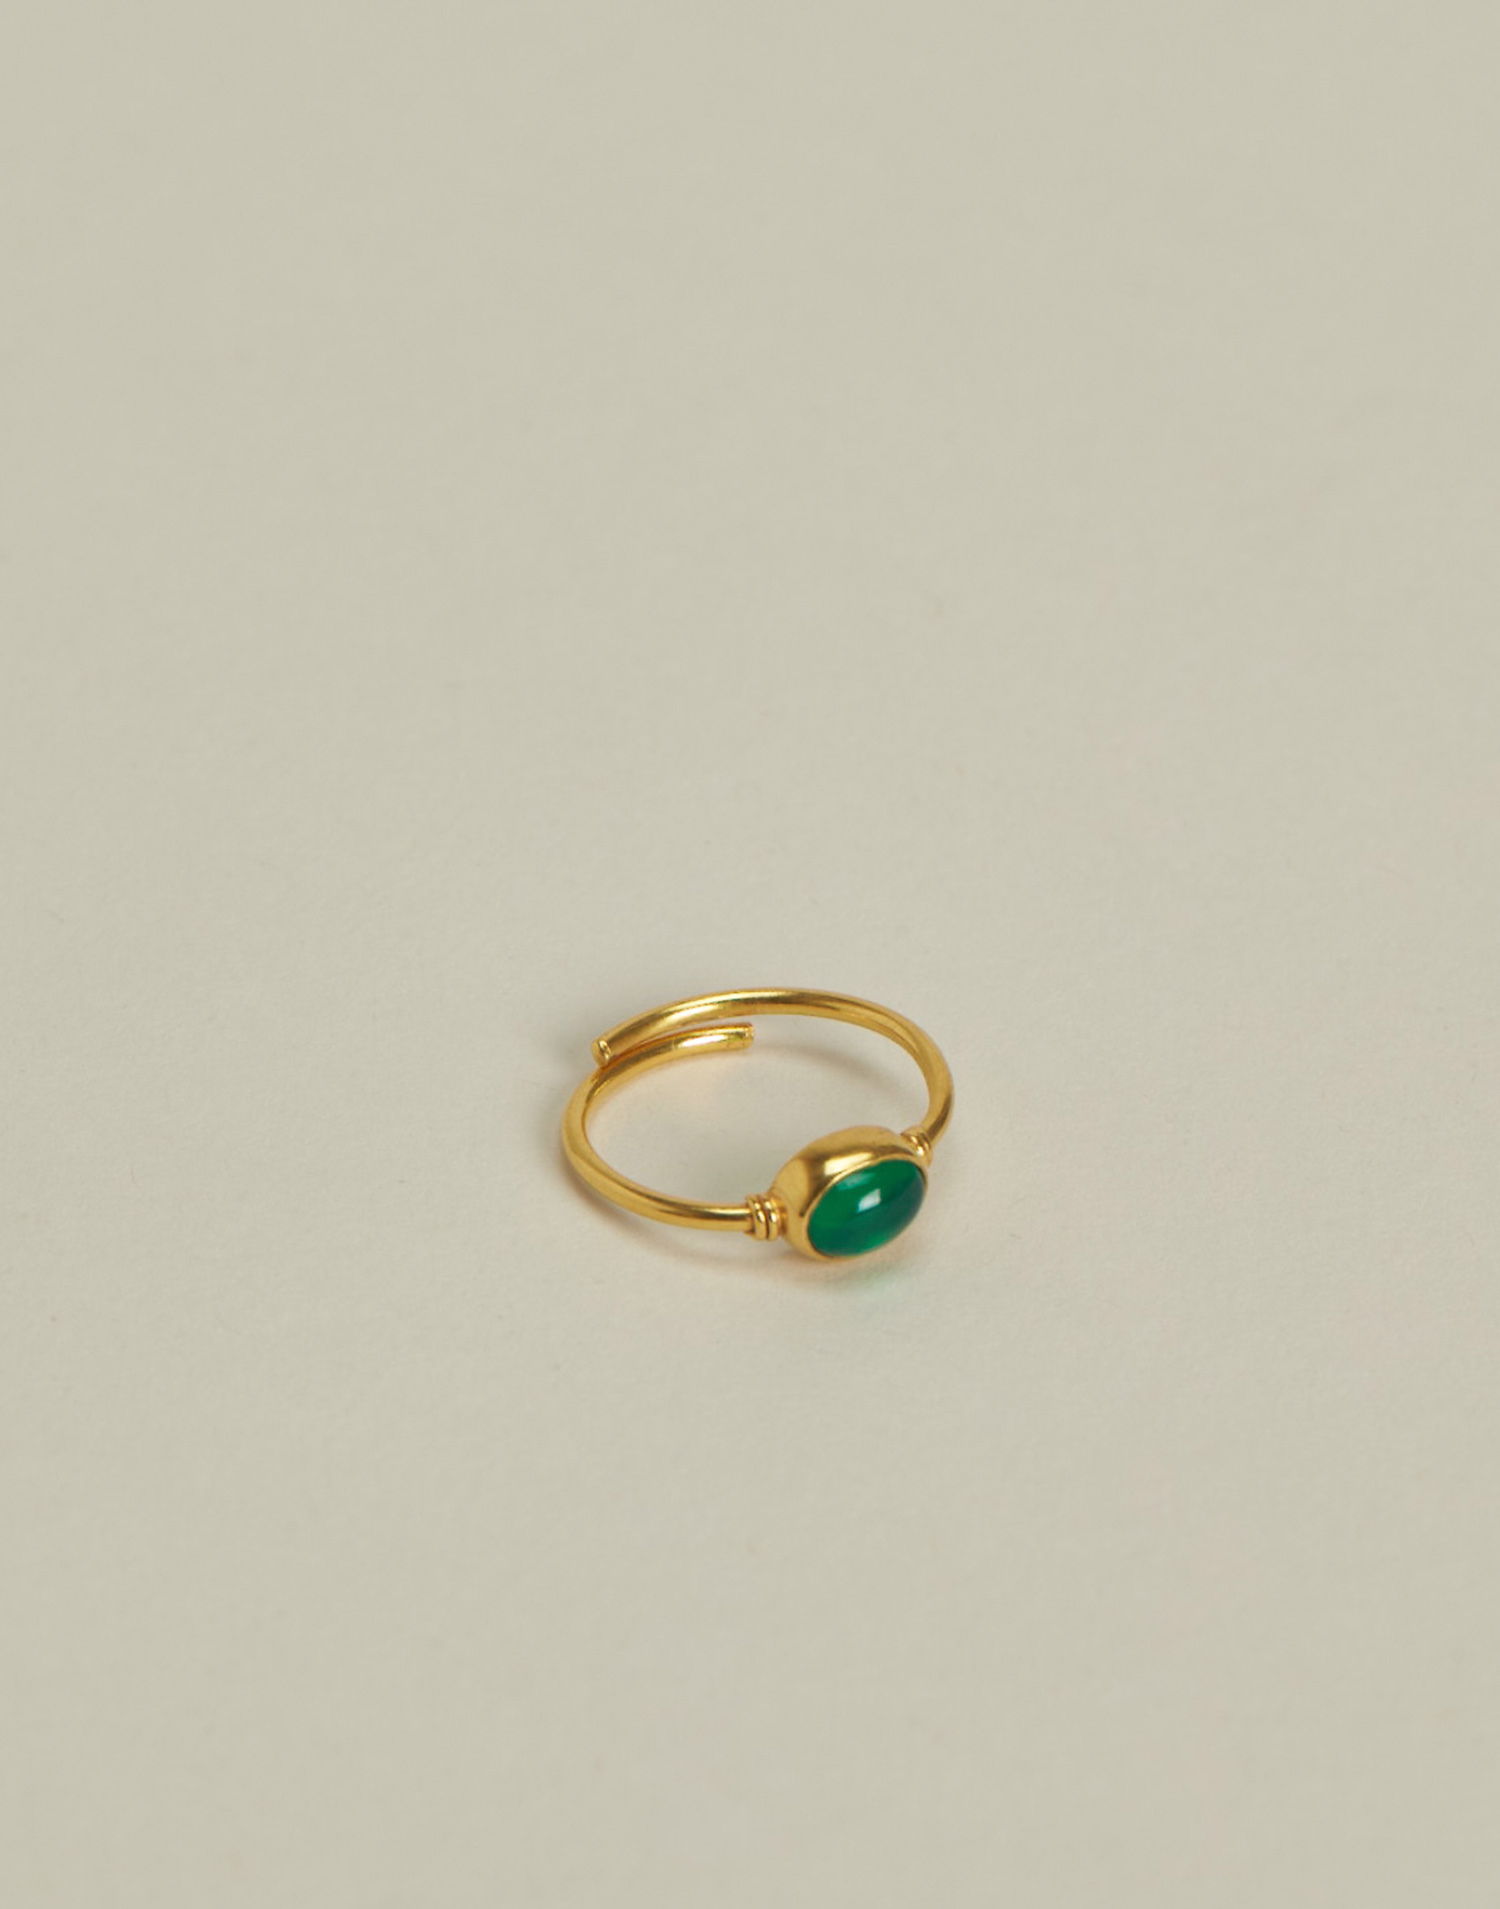 Gold plated oval stone ring